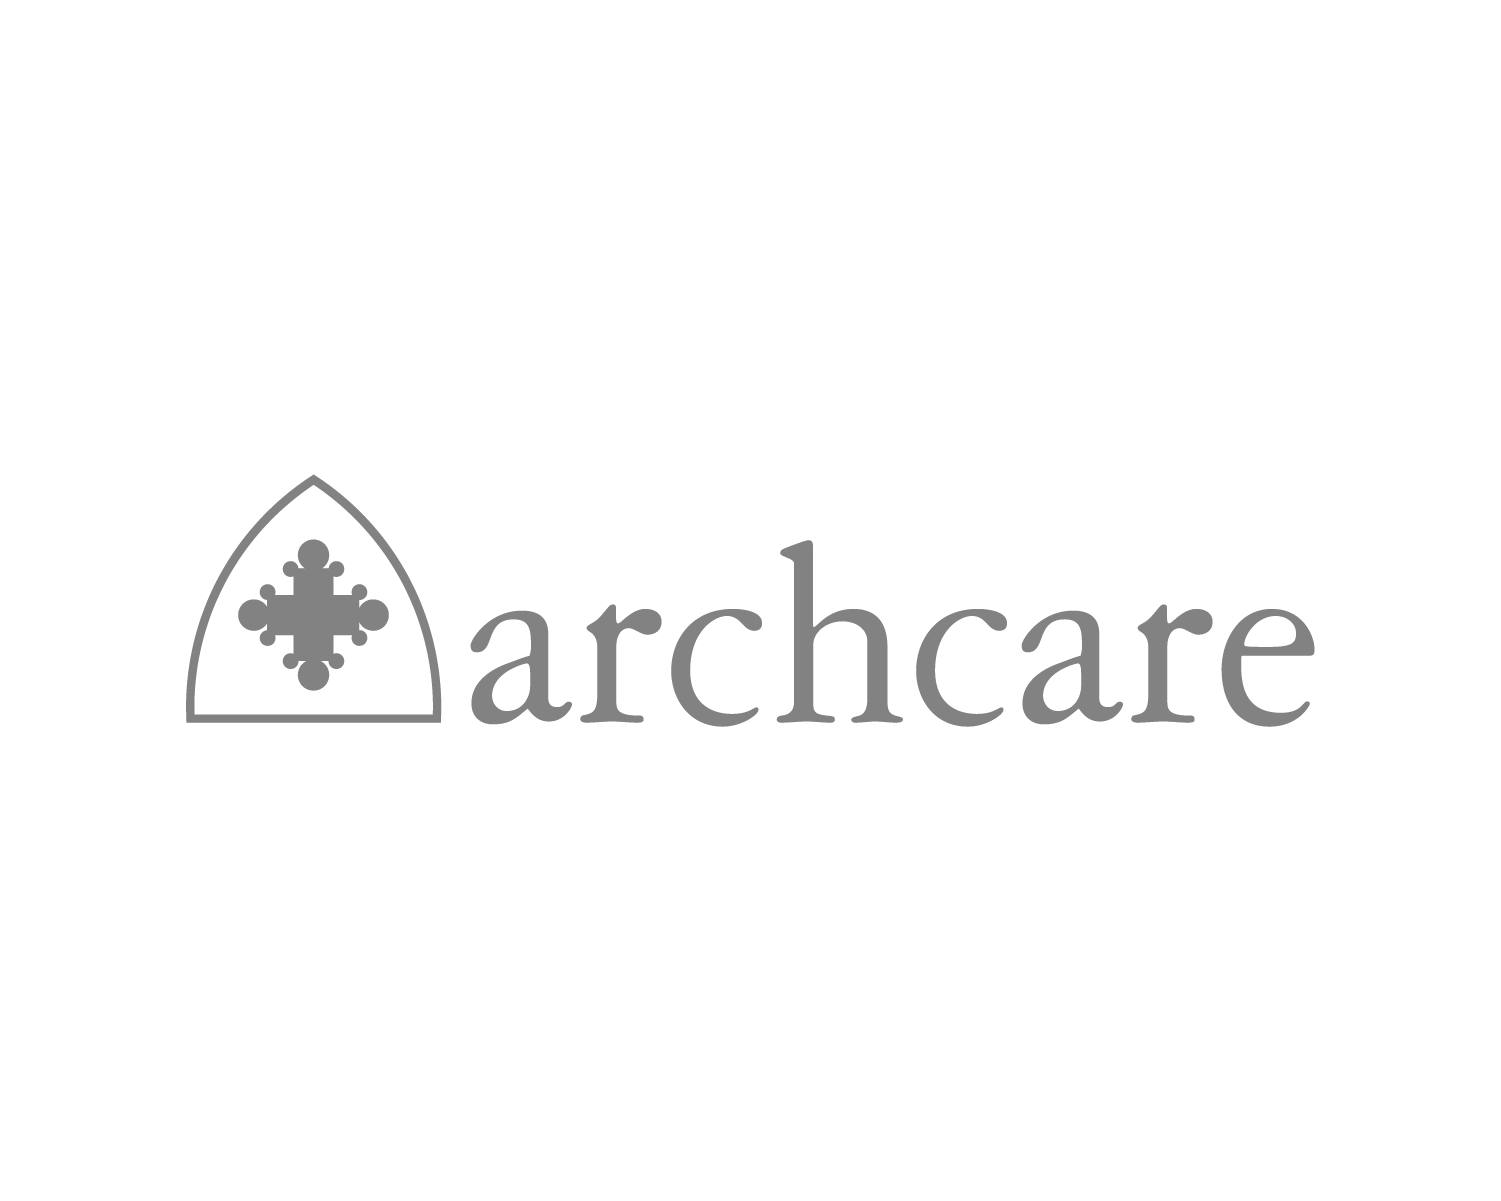 Archcare-01.png